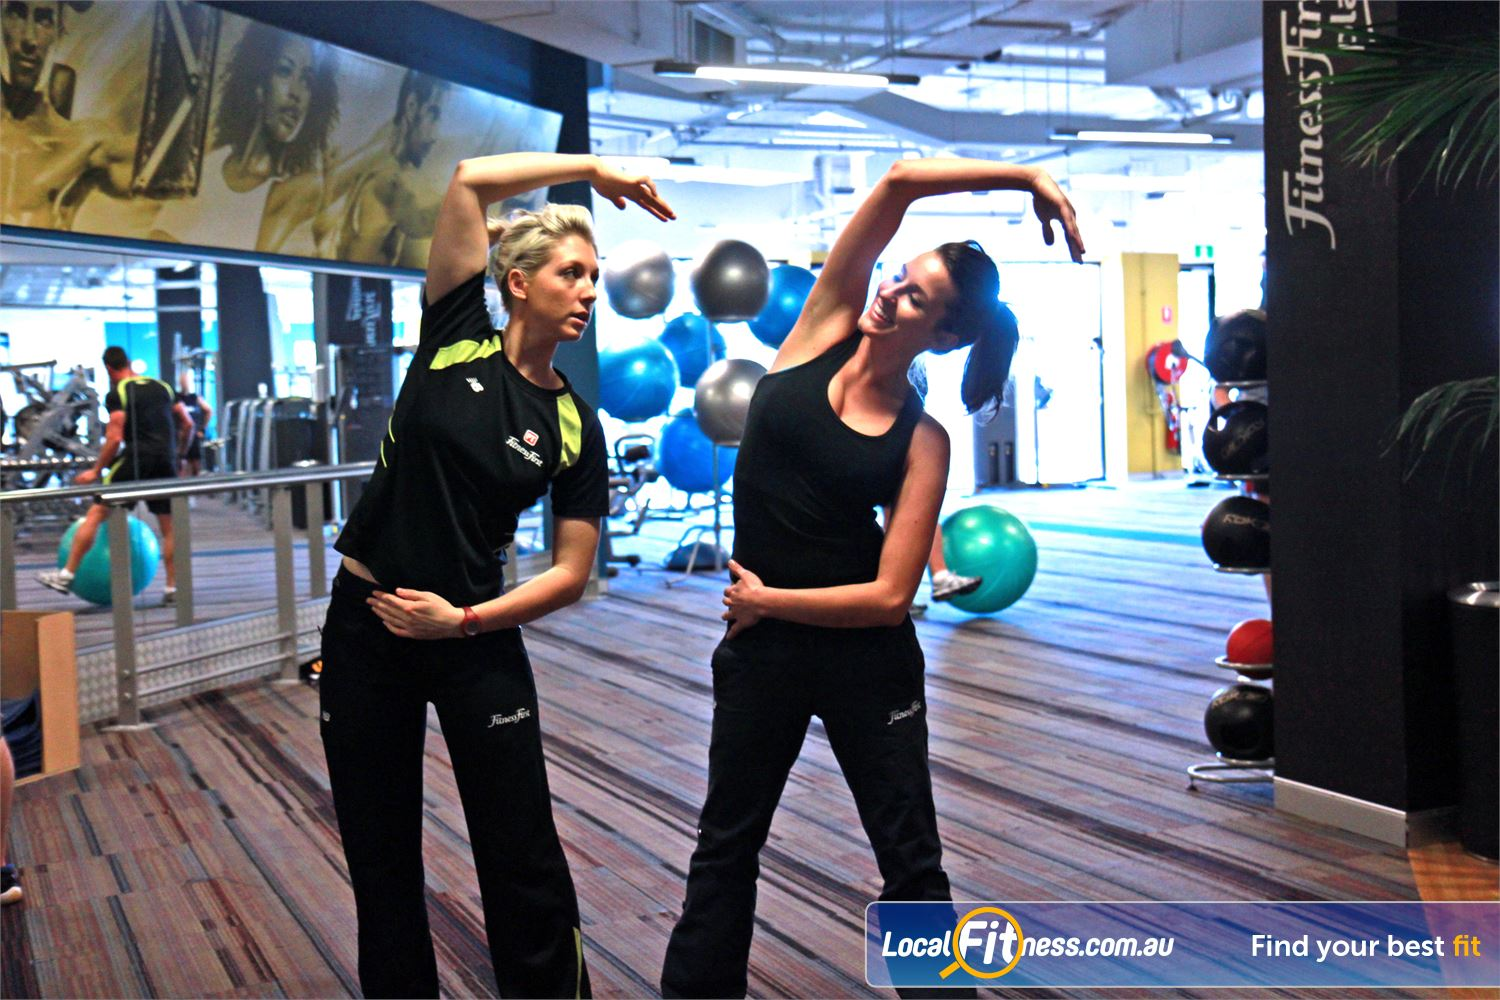 Goodlife Health Clubs Subiaco Goodlife staff can help you with your stretching and flexibility.